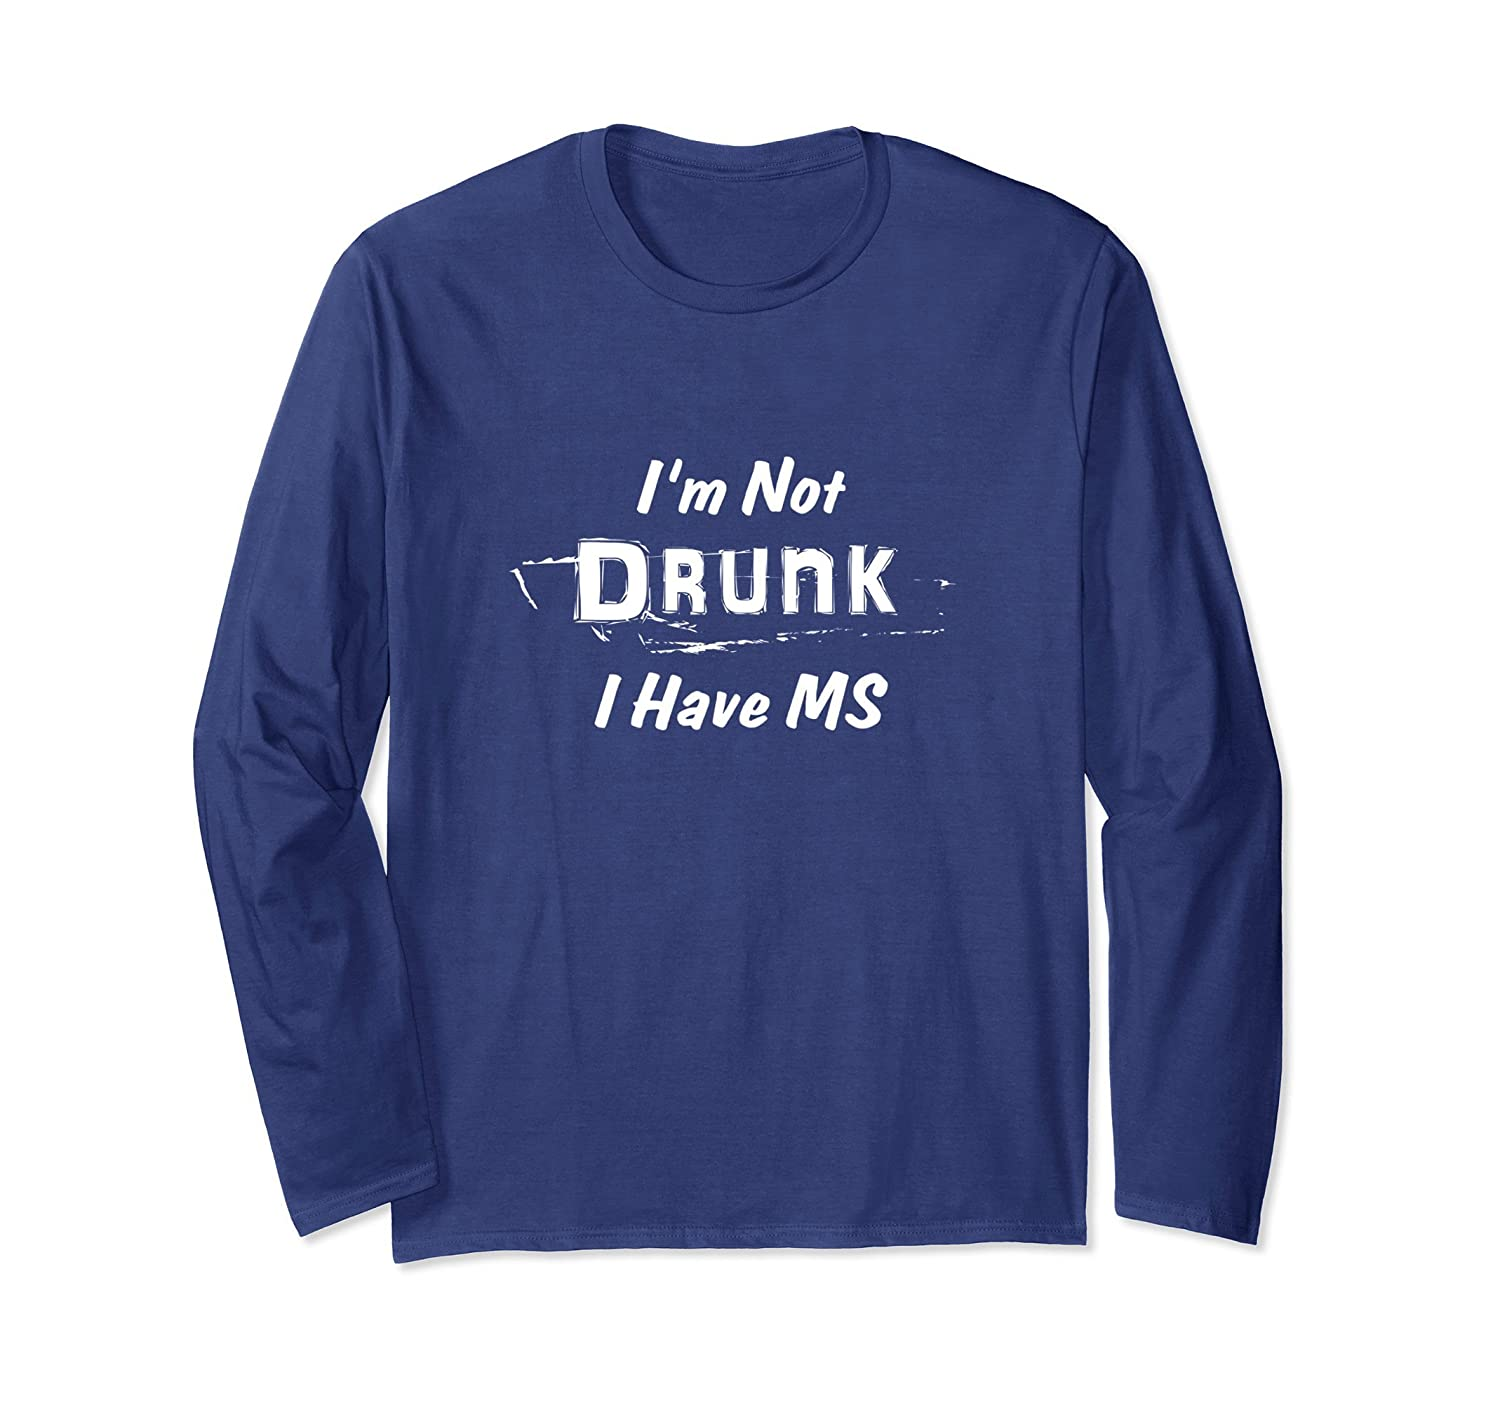 Multiple Sclerosis Awareness I'm Not Drunk I Have MS Tee-Teehay